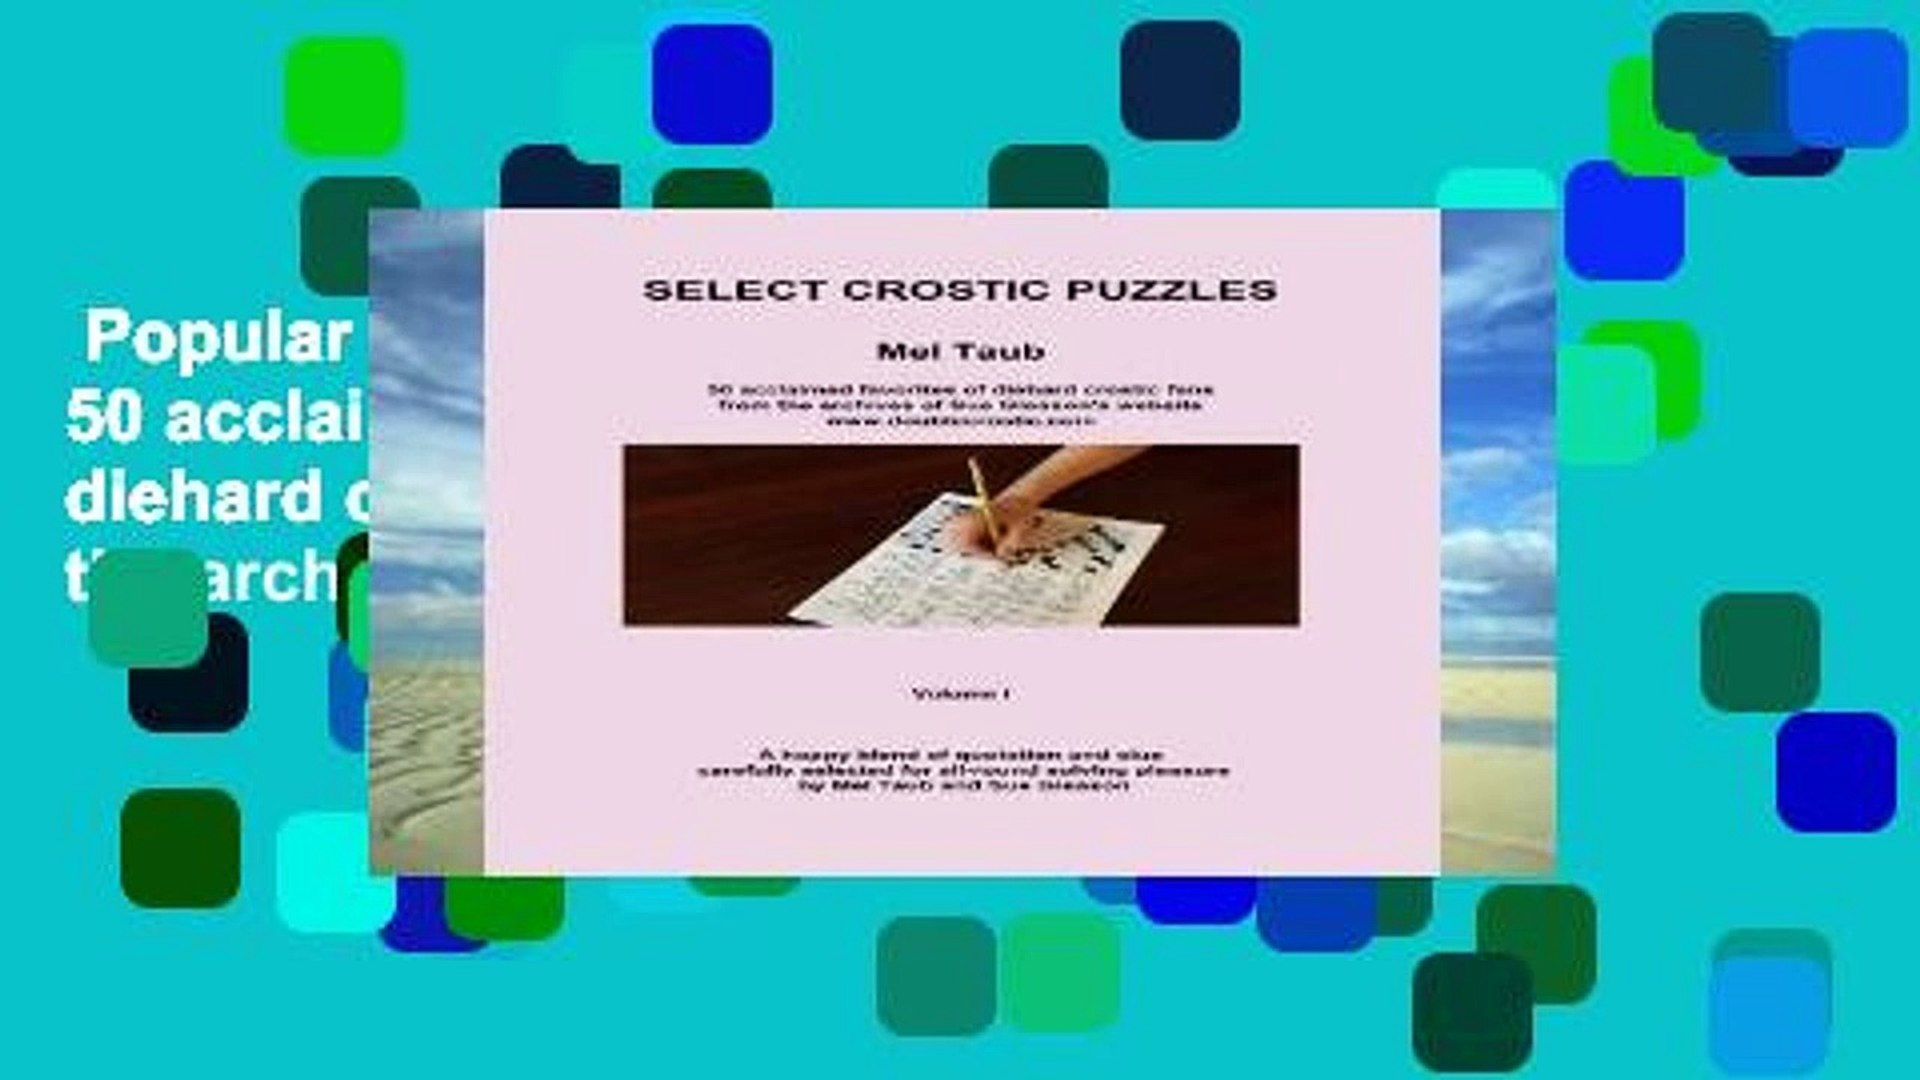 50 Puzzles from the archives of Sue Gleasons doublecrostic website Choice Double Crostics